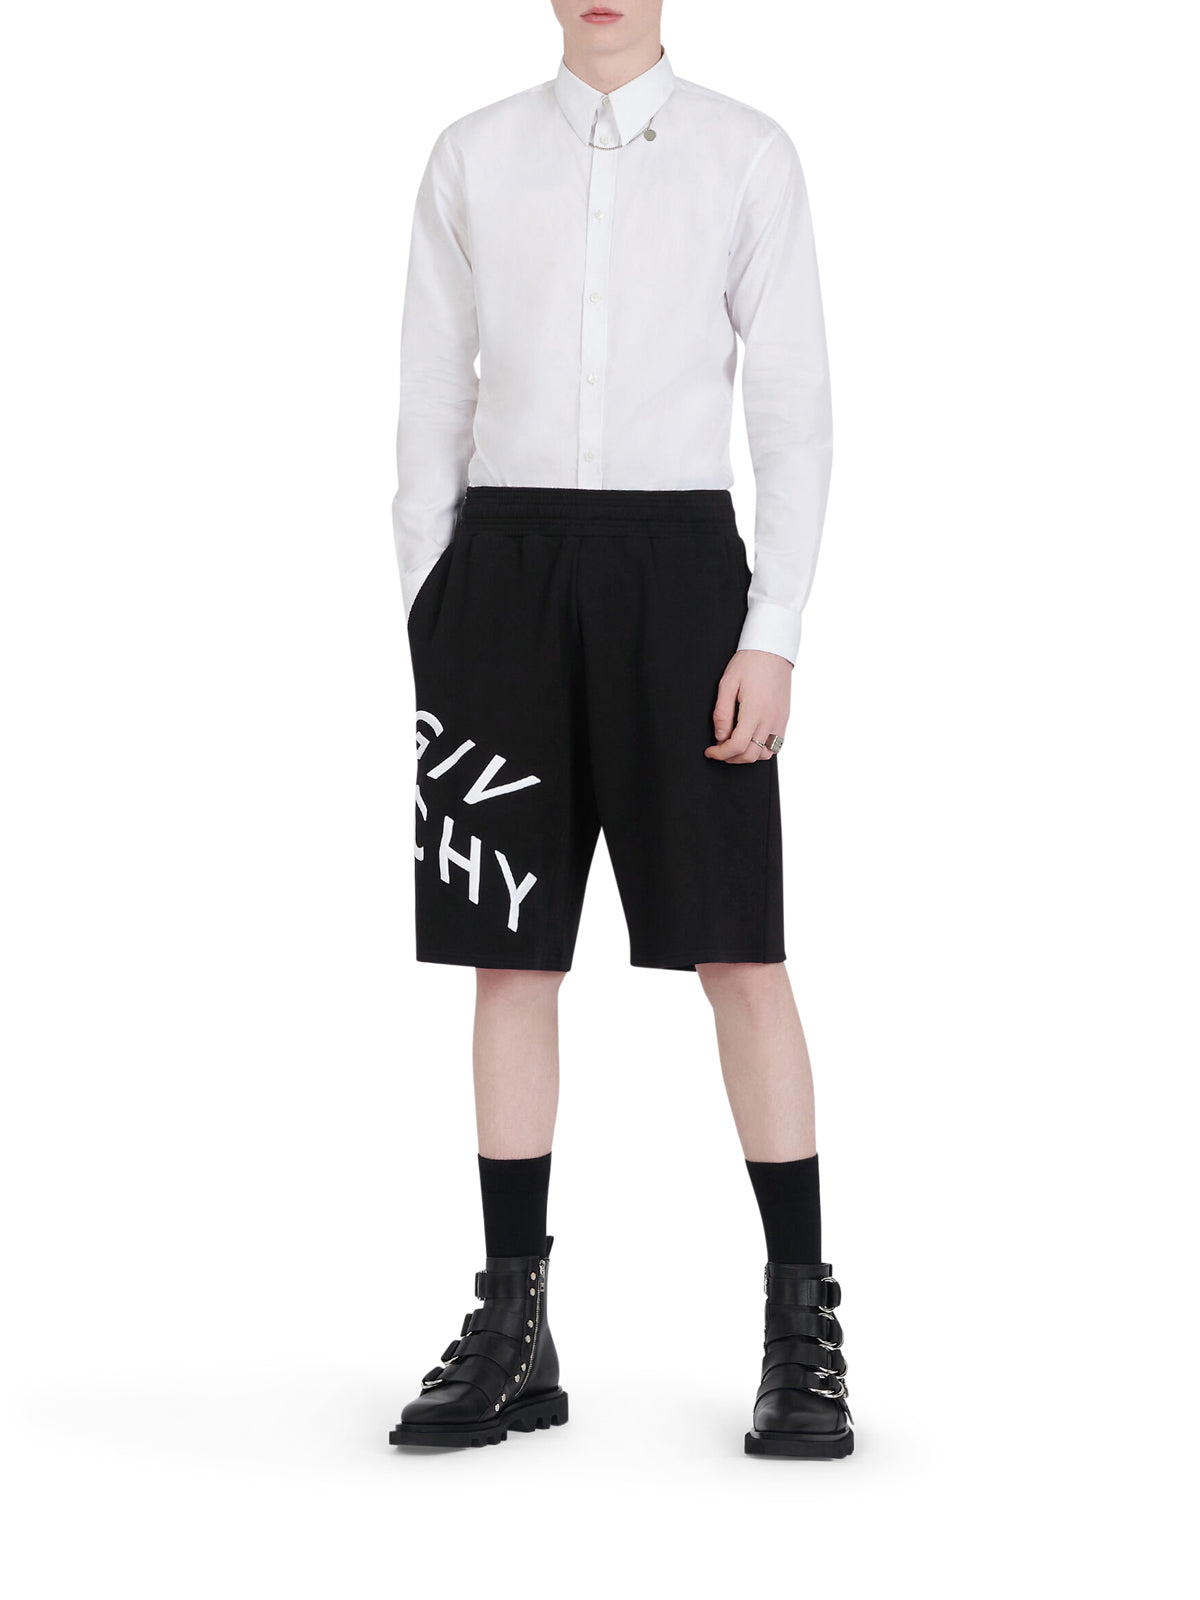 GIVENCHY REFRACTED EMBROIDERED SHORT PANTS